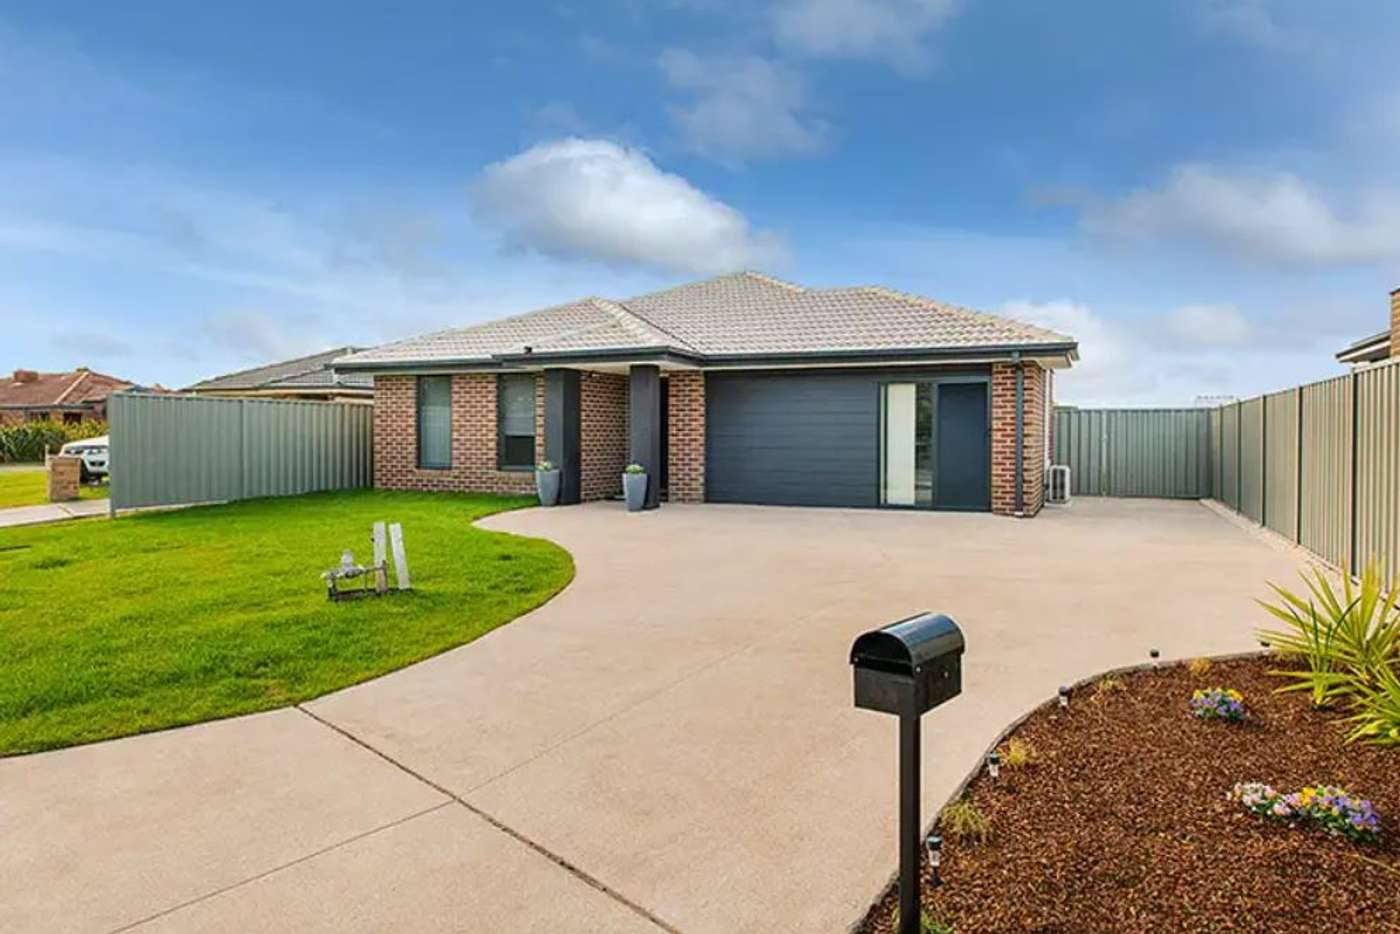 Main view of Homely house listing, 66 Ardent Crescent, Cranbourne East VIC 3977